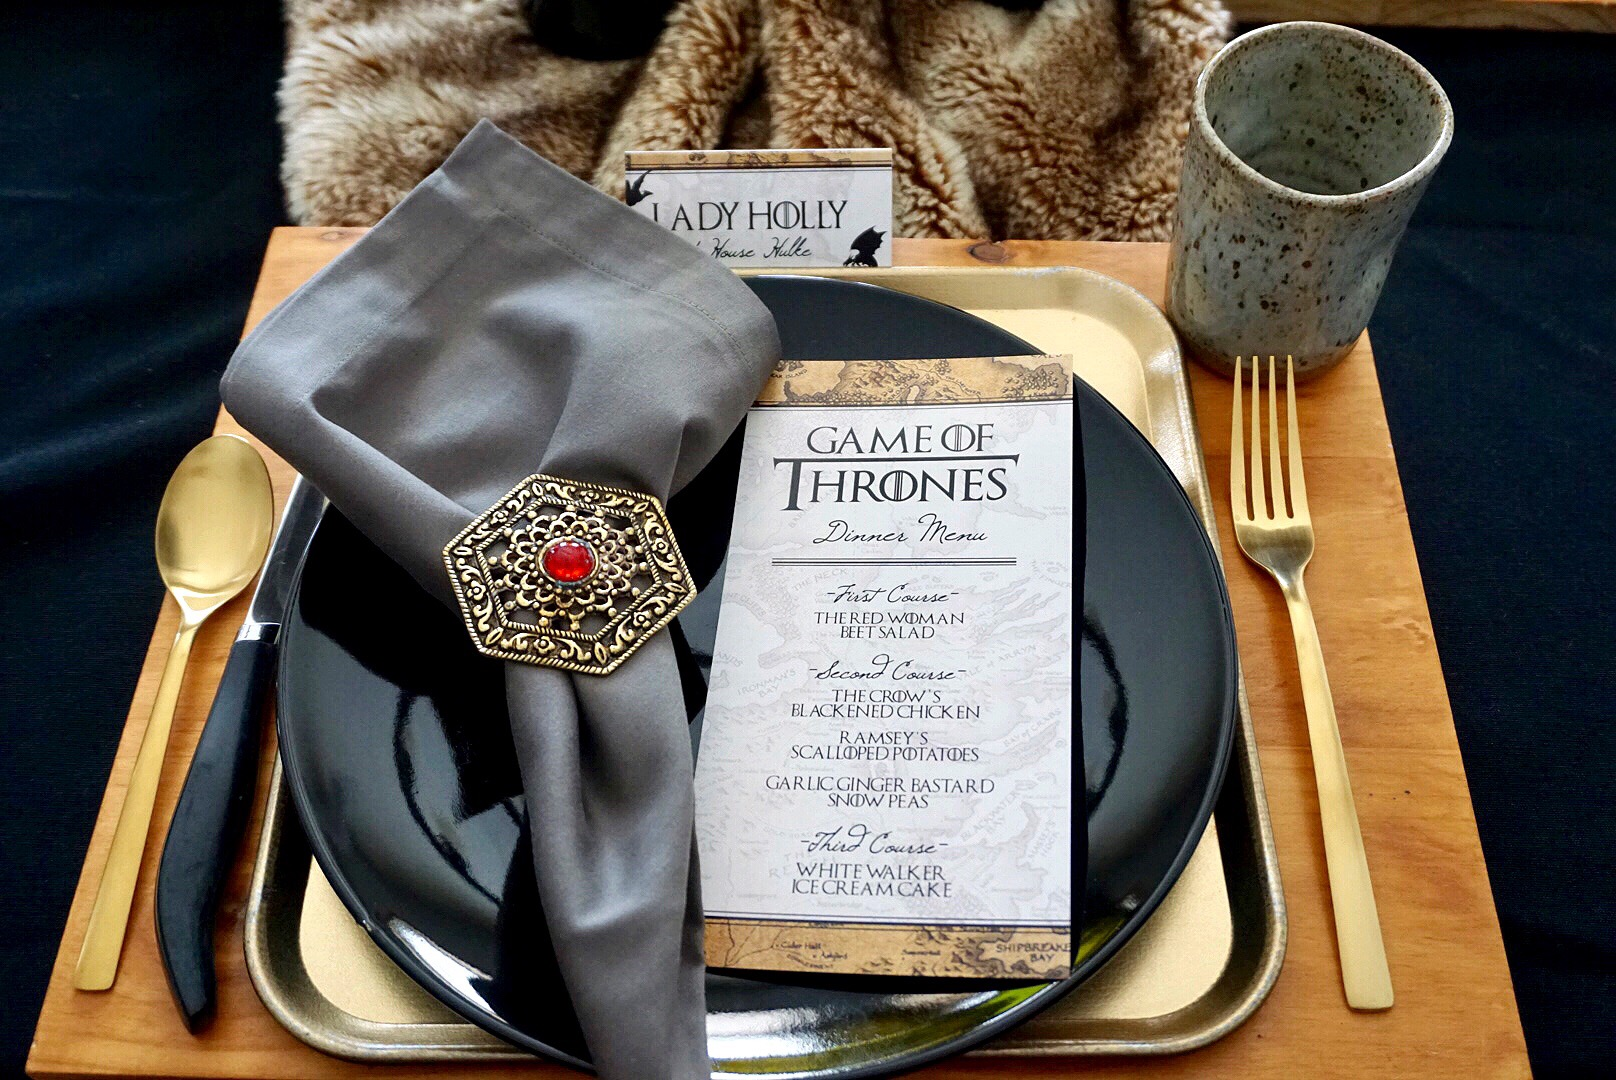 Wood chargers, gold trays, and black plates make the perfect layers for a Game of Thrones themed place setting.